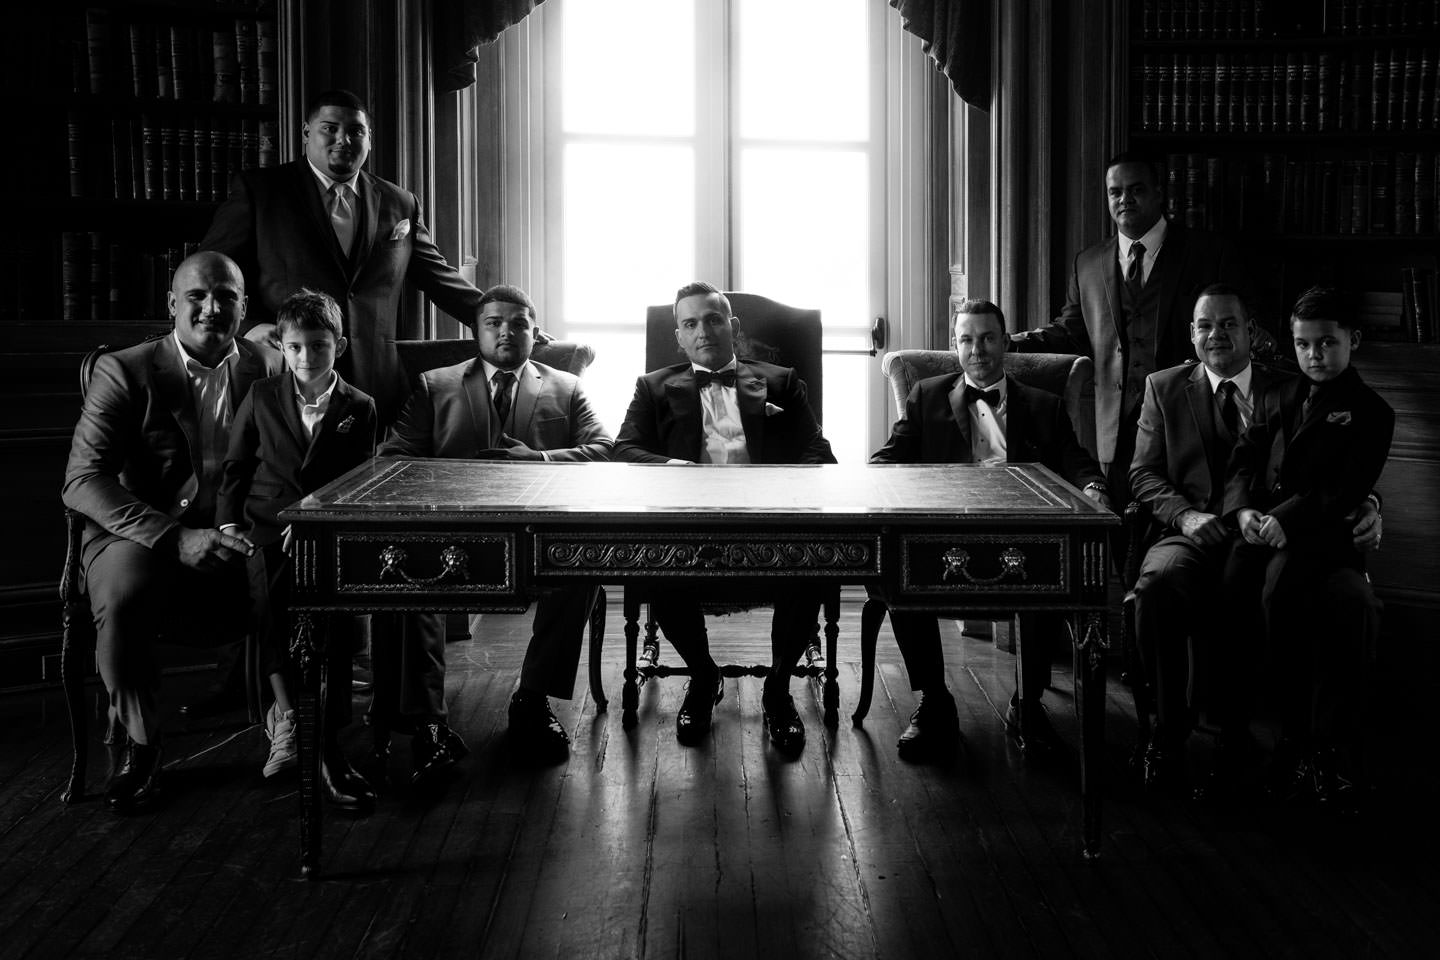 Groom and groomsmen group photo at oheka castle library in long island wedding venue new york